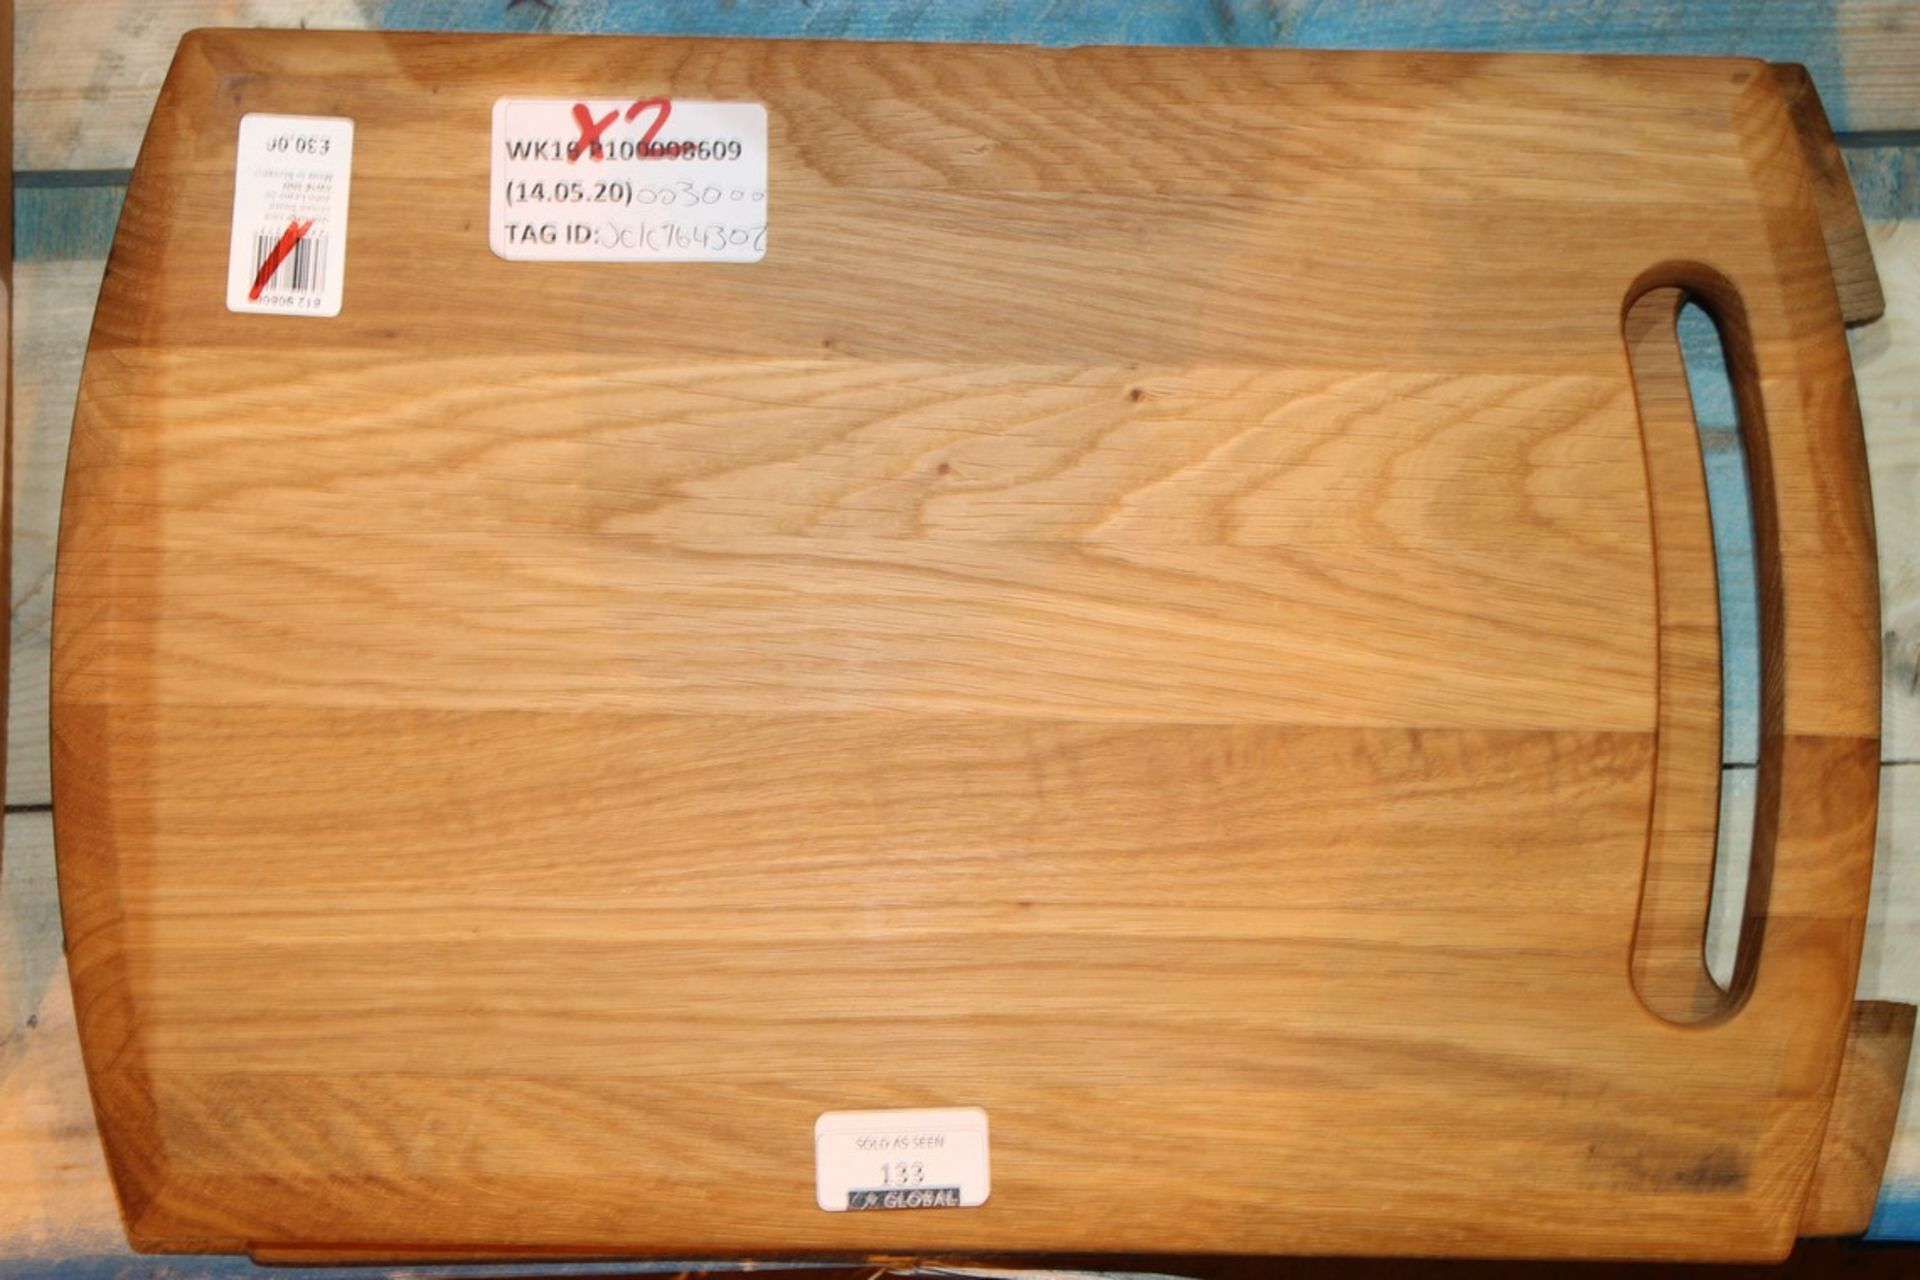 Lot 133 - Solid Wooden John Lewis And Partners Work Surface Protector Chopping Boards RRP £30 Each (764302) (